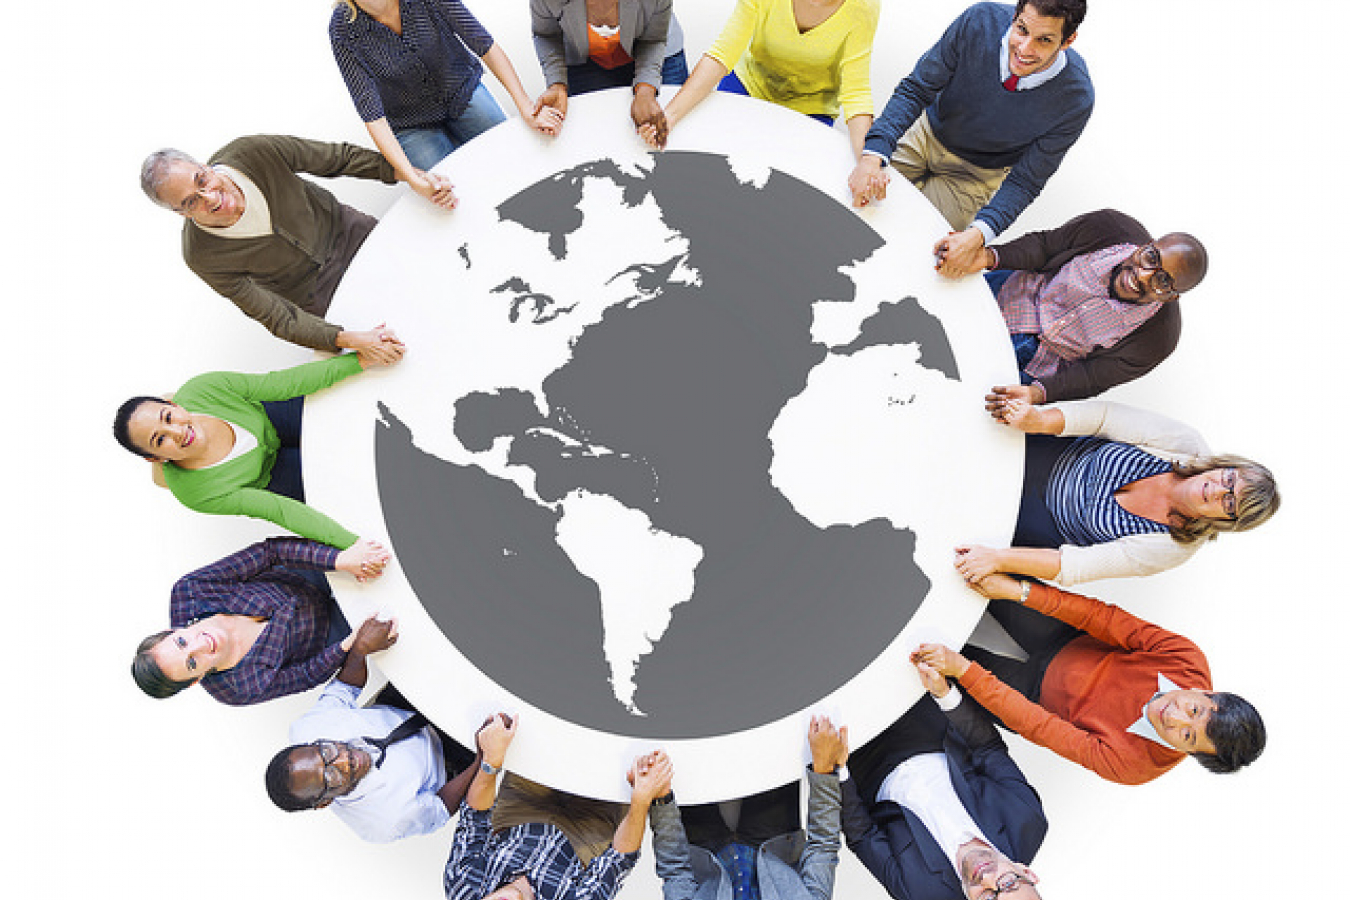 Multiethnic Diverse People in a Circle Holding Hands